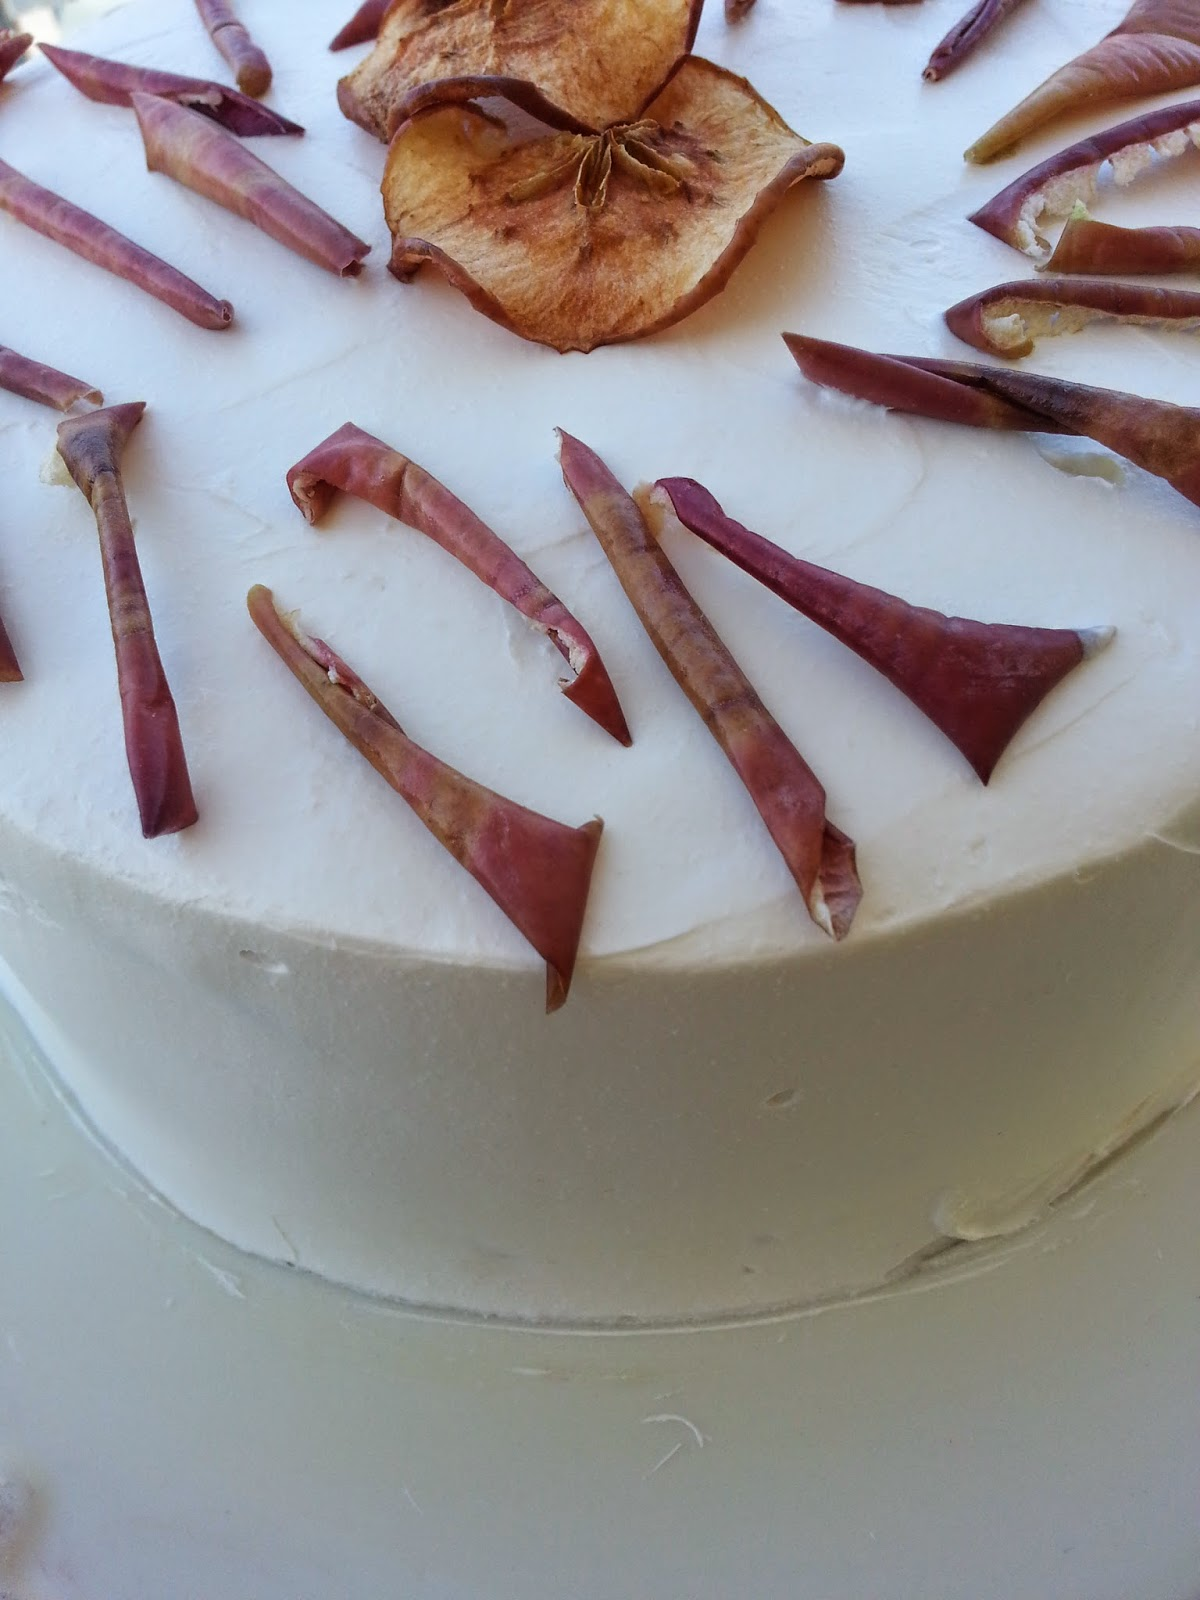 Aplle cake